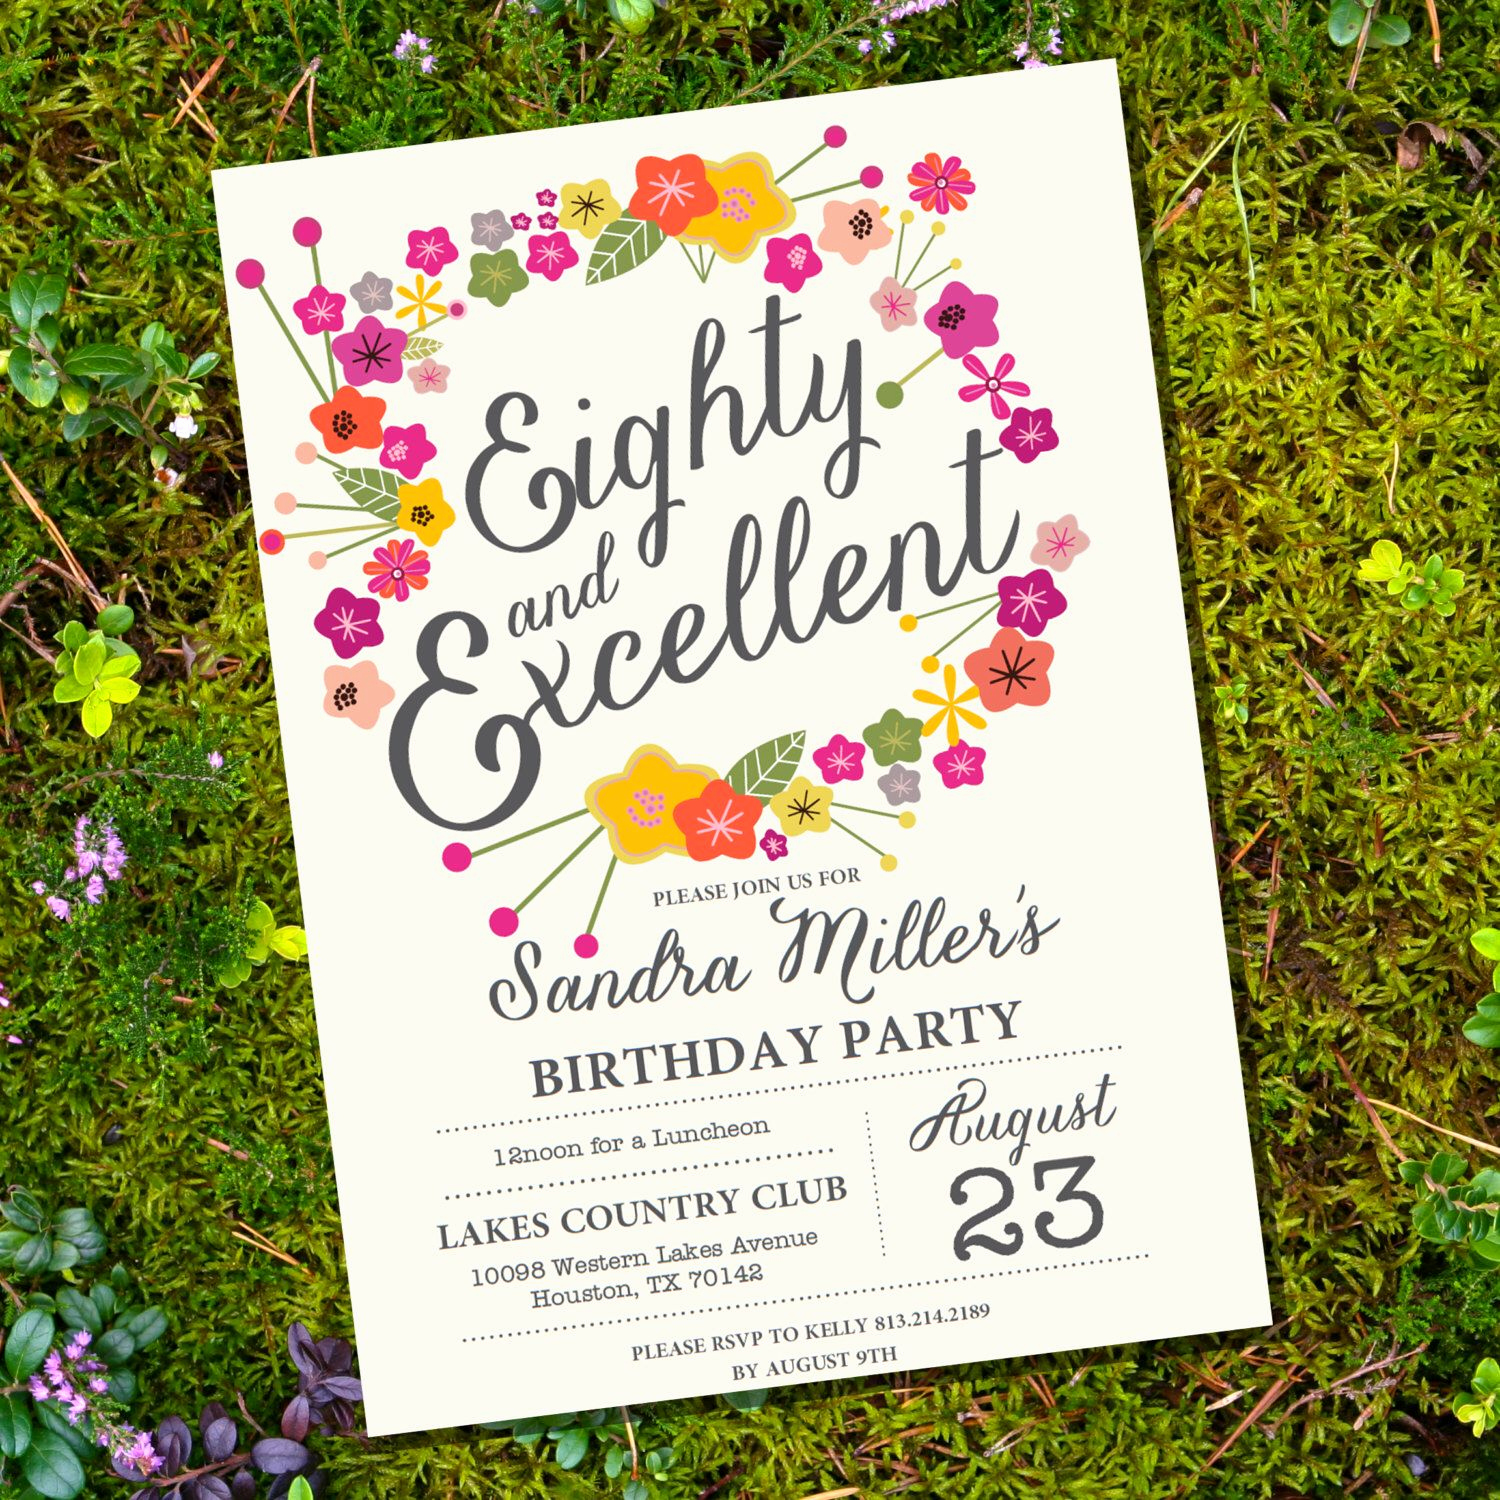 80th Birthday Invitation Templates Beautiful Floral Eightieth Birthday Invitation 80th Birthday